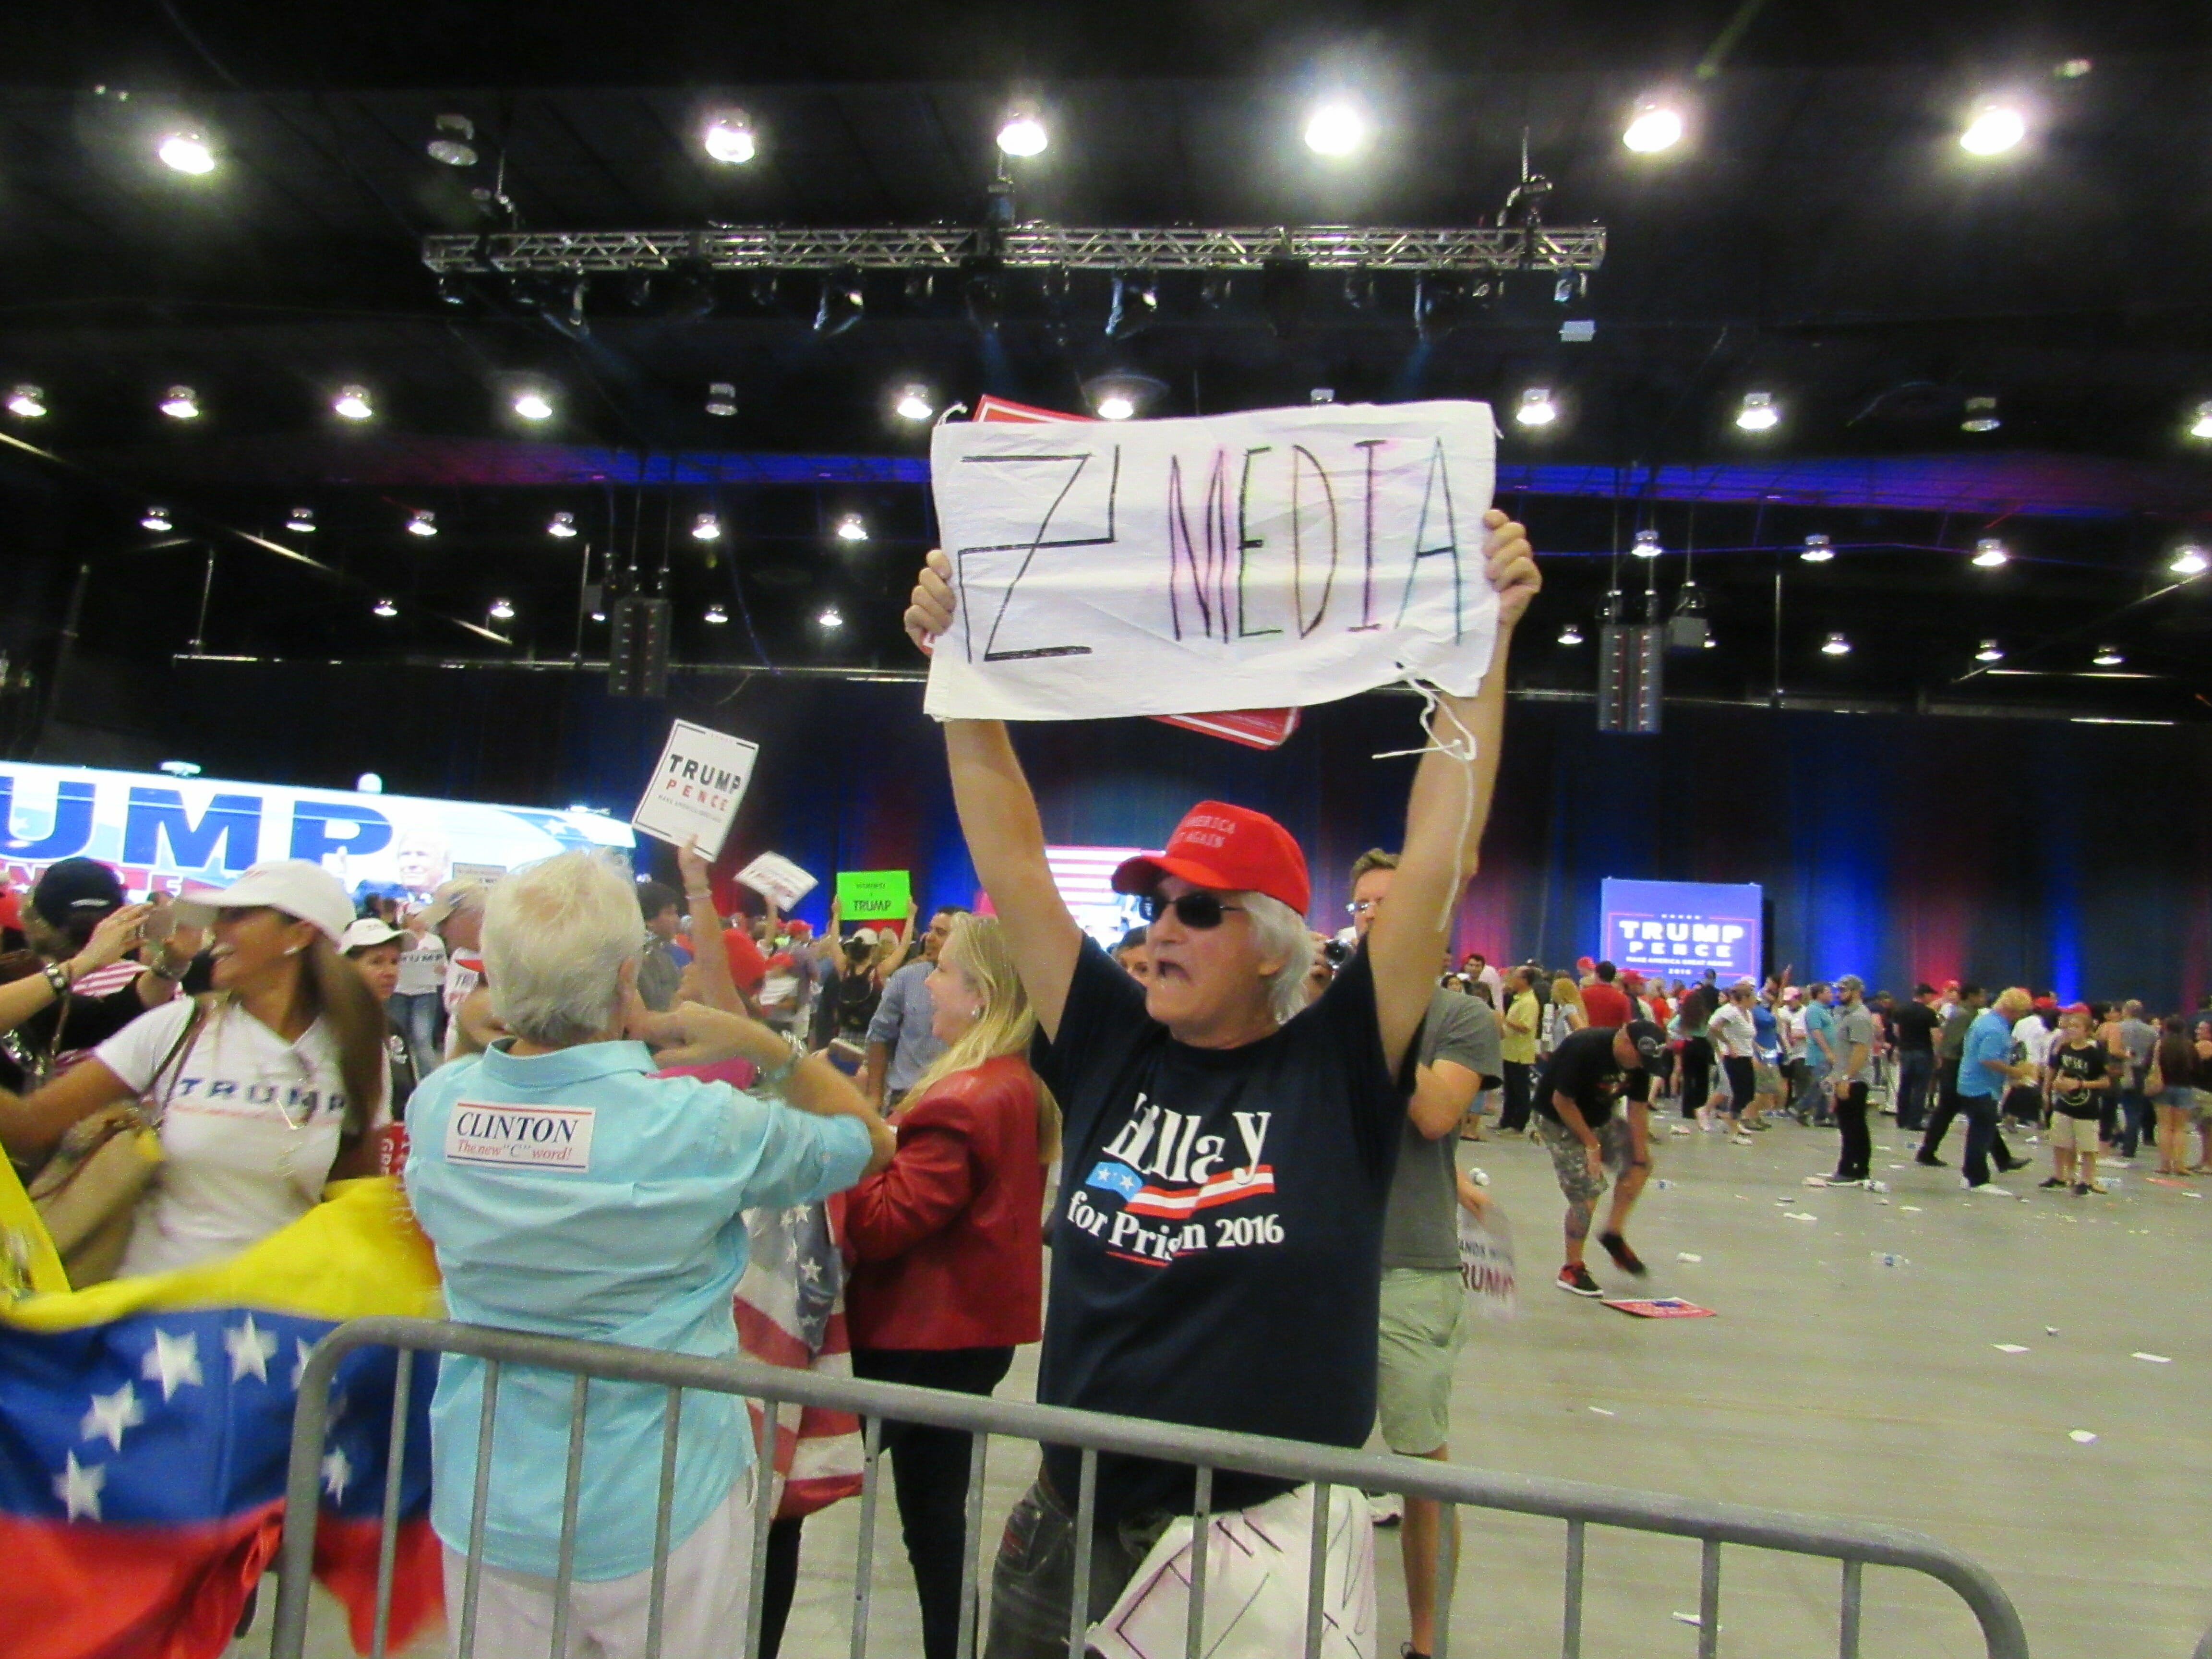 Trump supporter holds sign in front of media pen at West Palm Beach rally